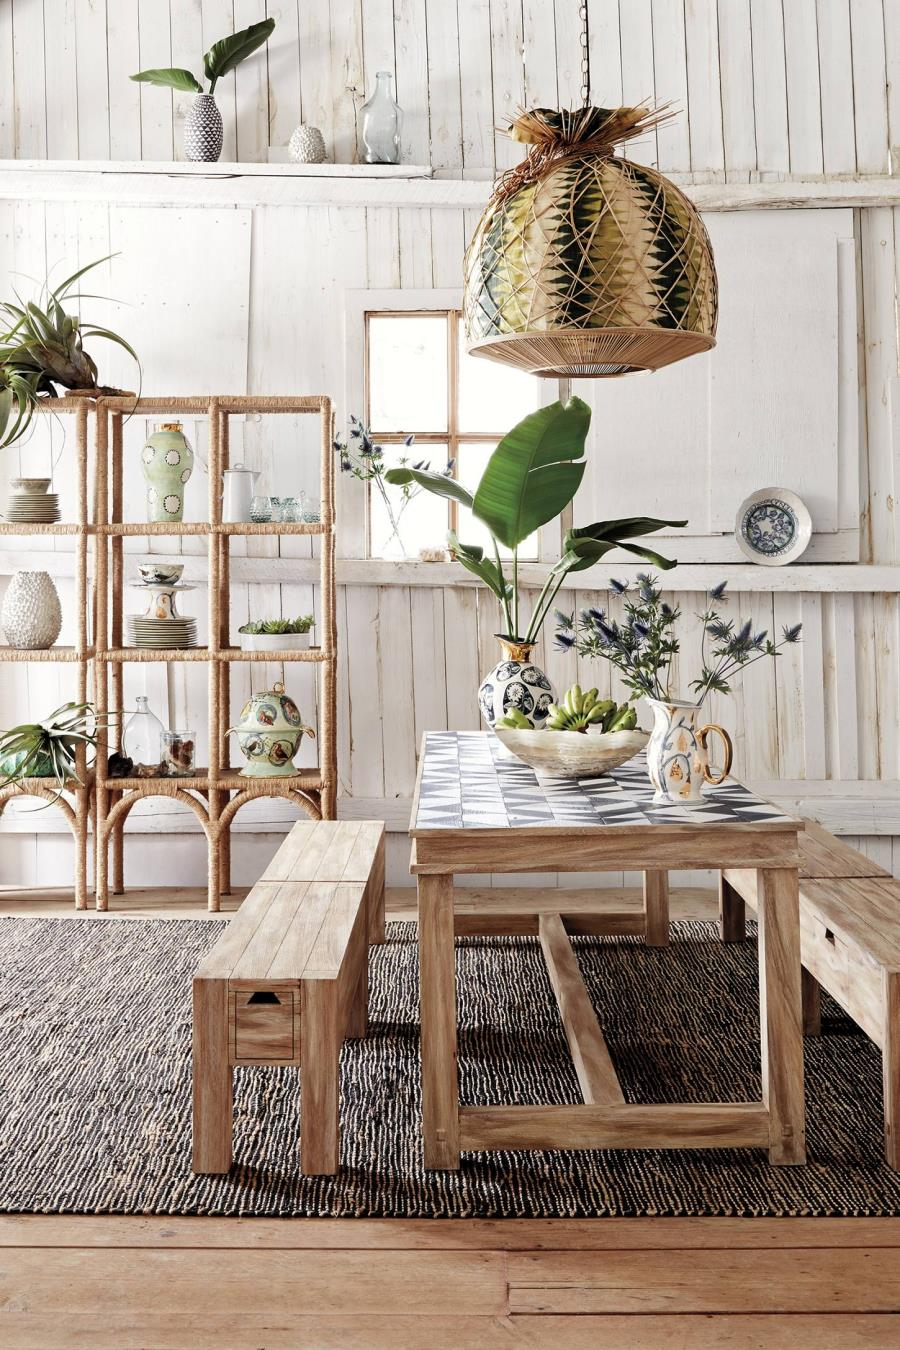 30 Ways To Create A Trendy Industrial Dining Room: Dining Room Decor Ideas That Make A Statement